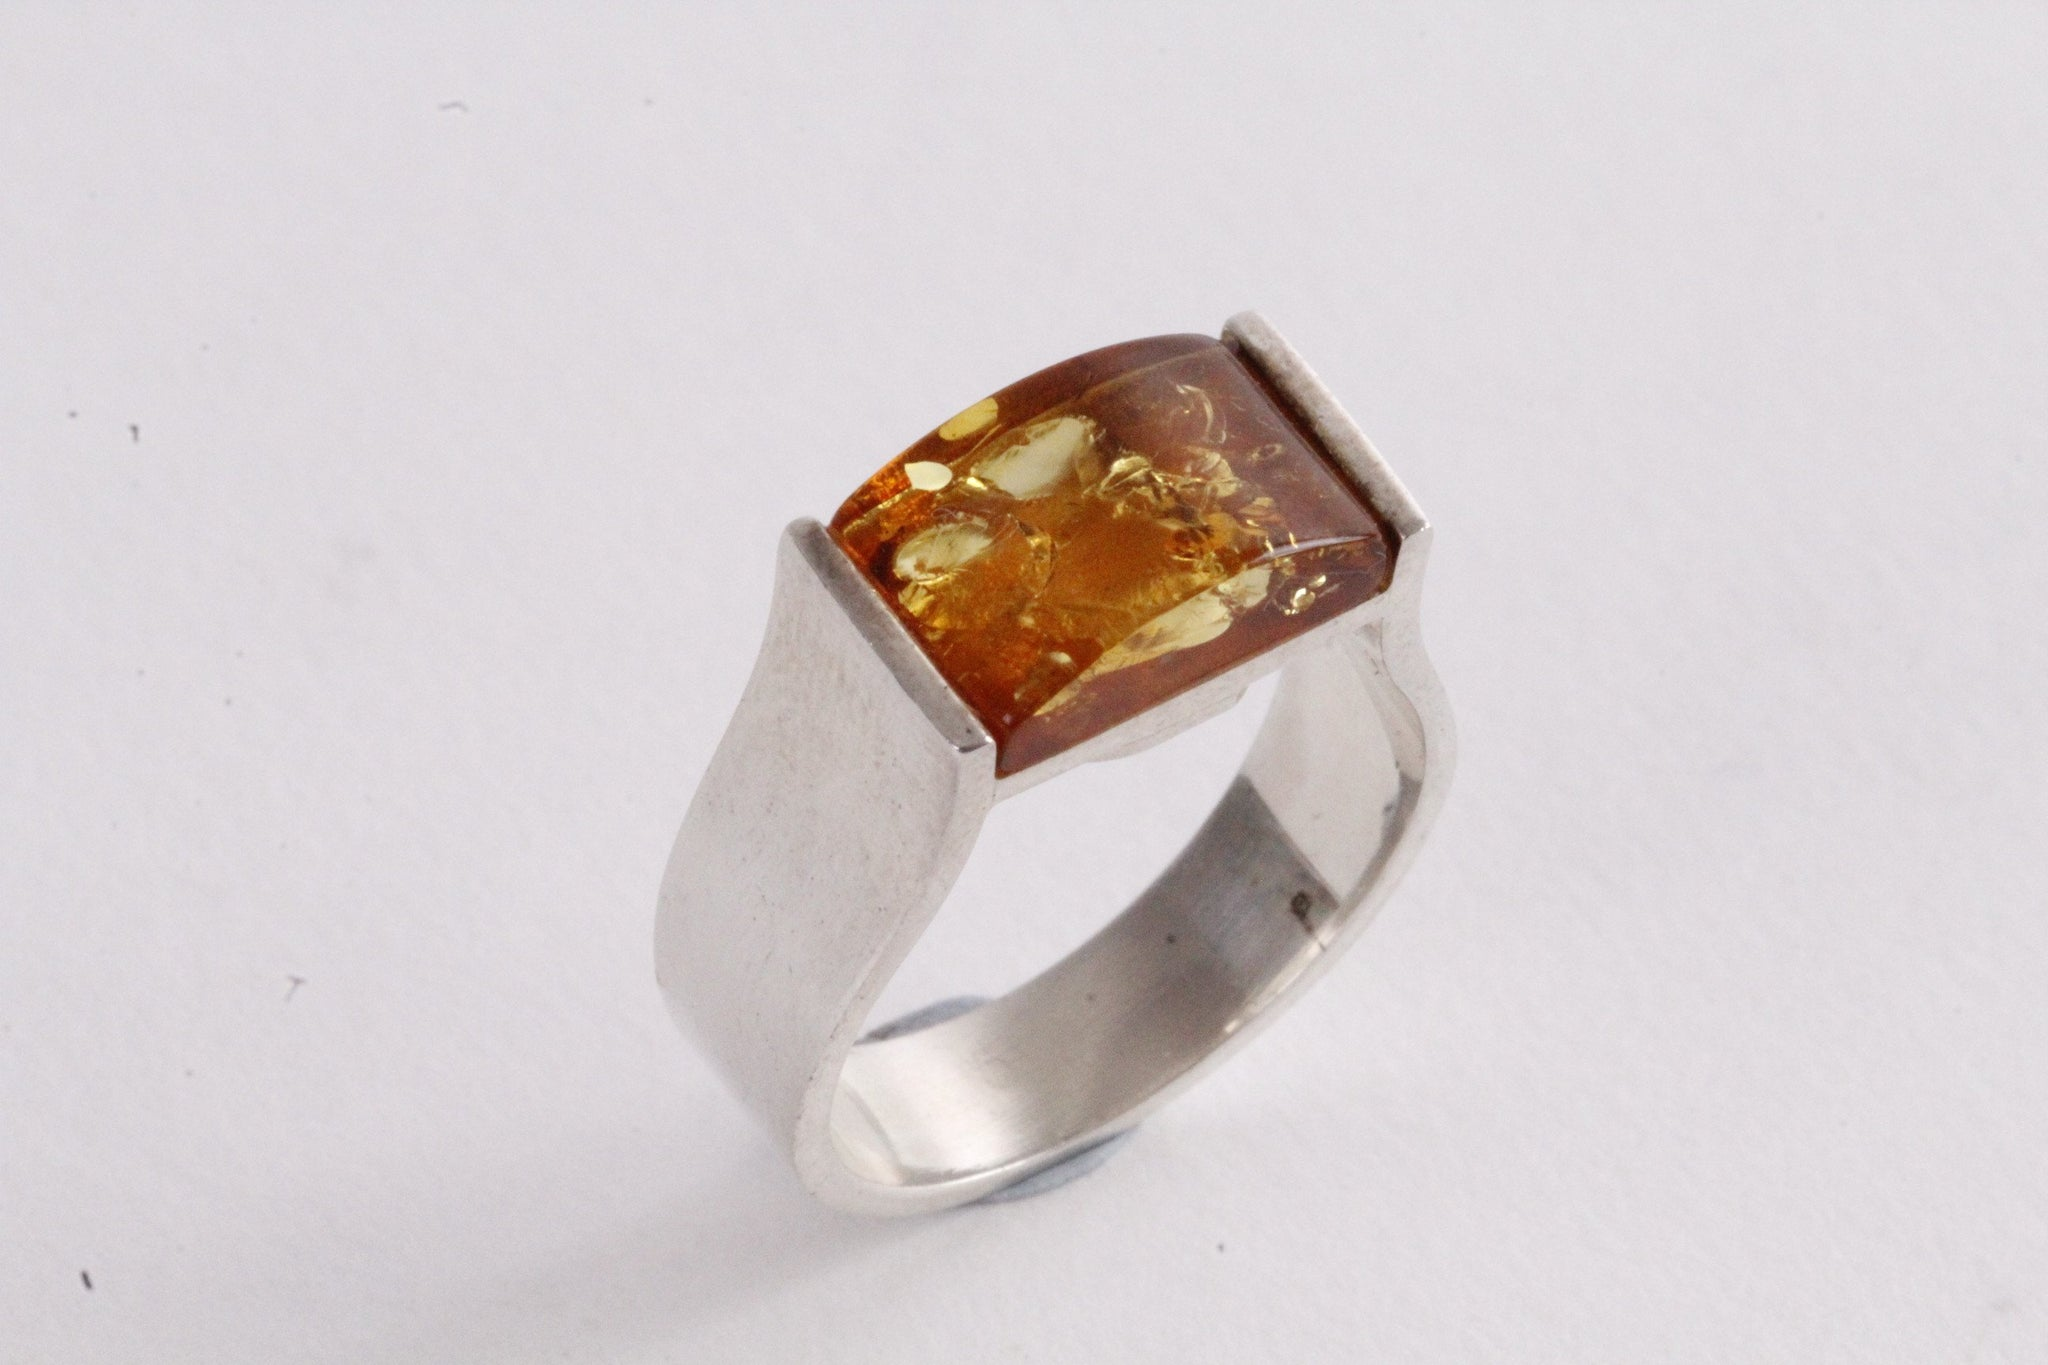 Honey Geometric Ring - Amber SOS